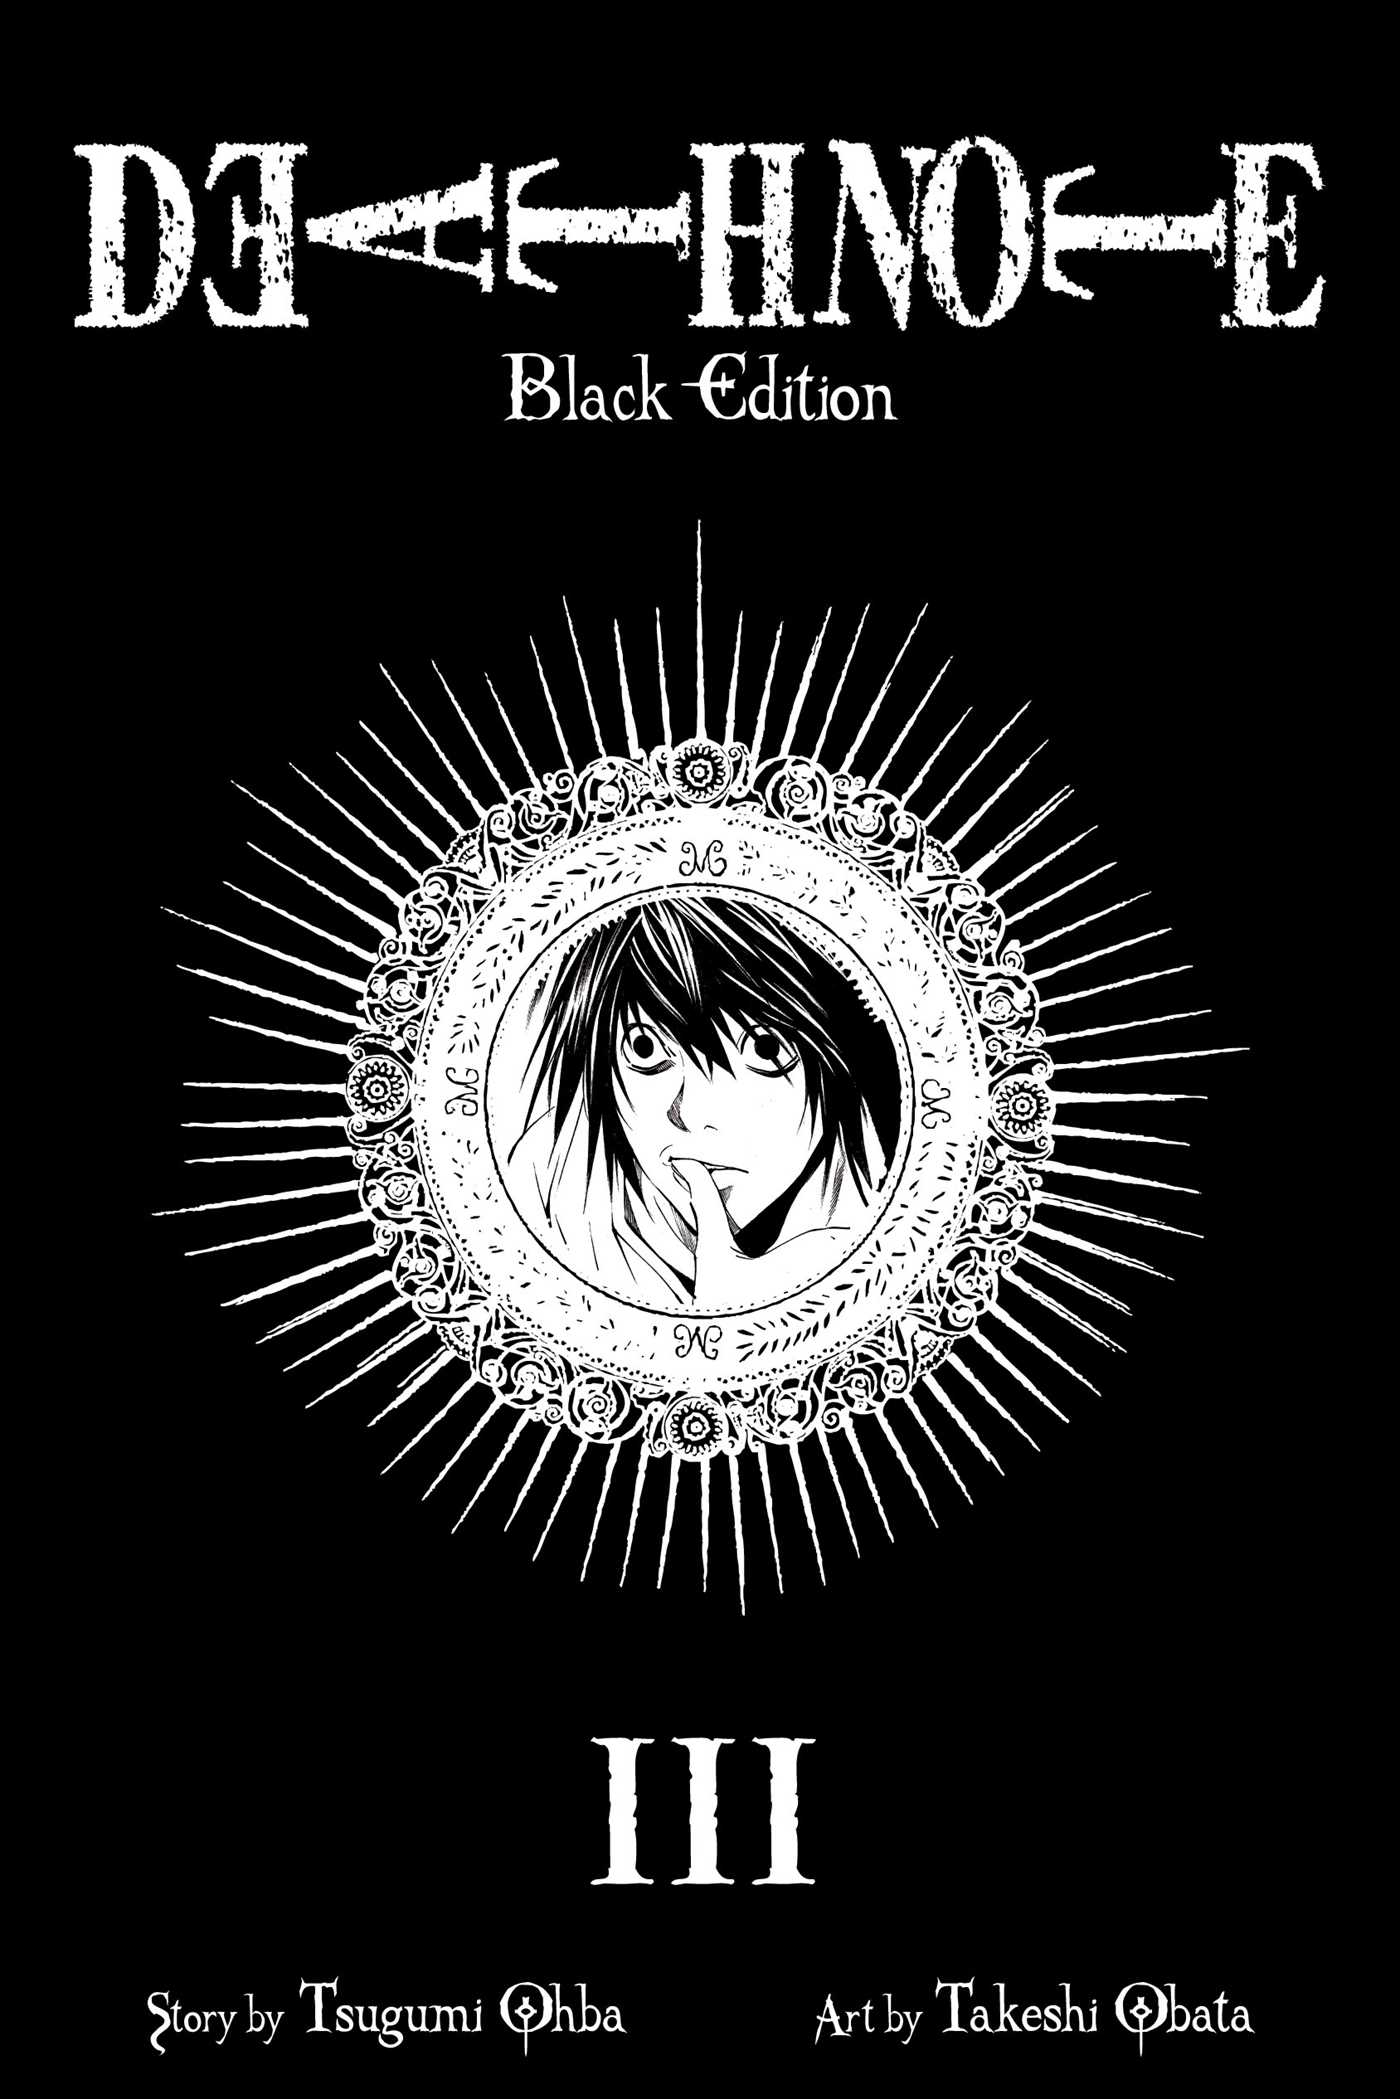 Death note black edition vol 3 9781421539669 hr